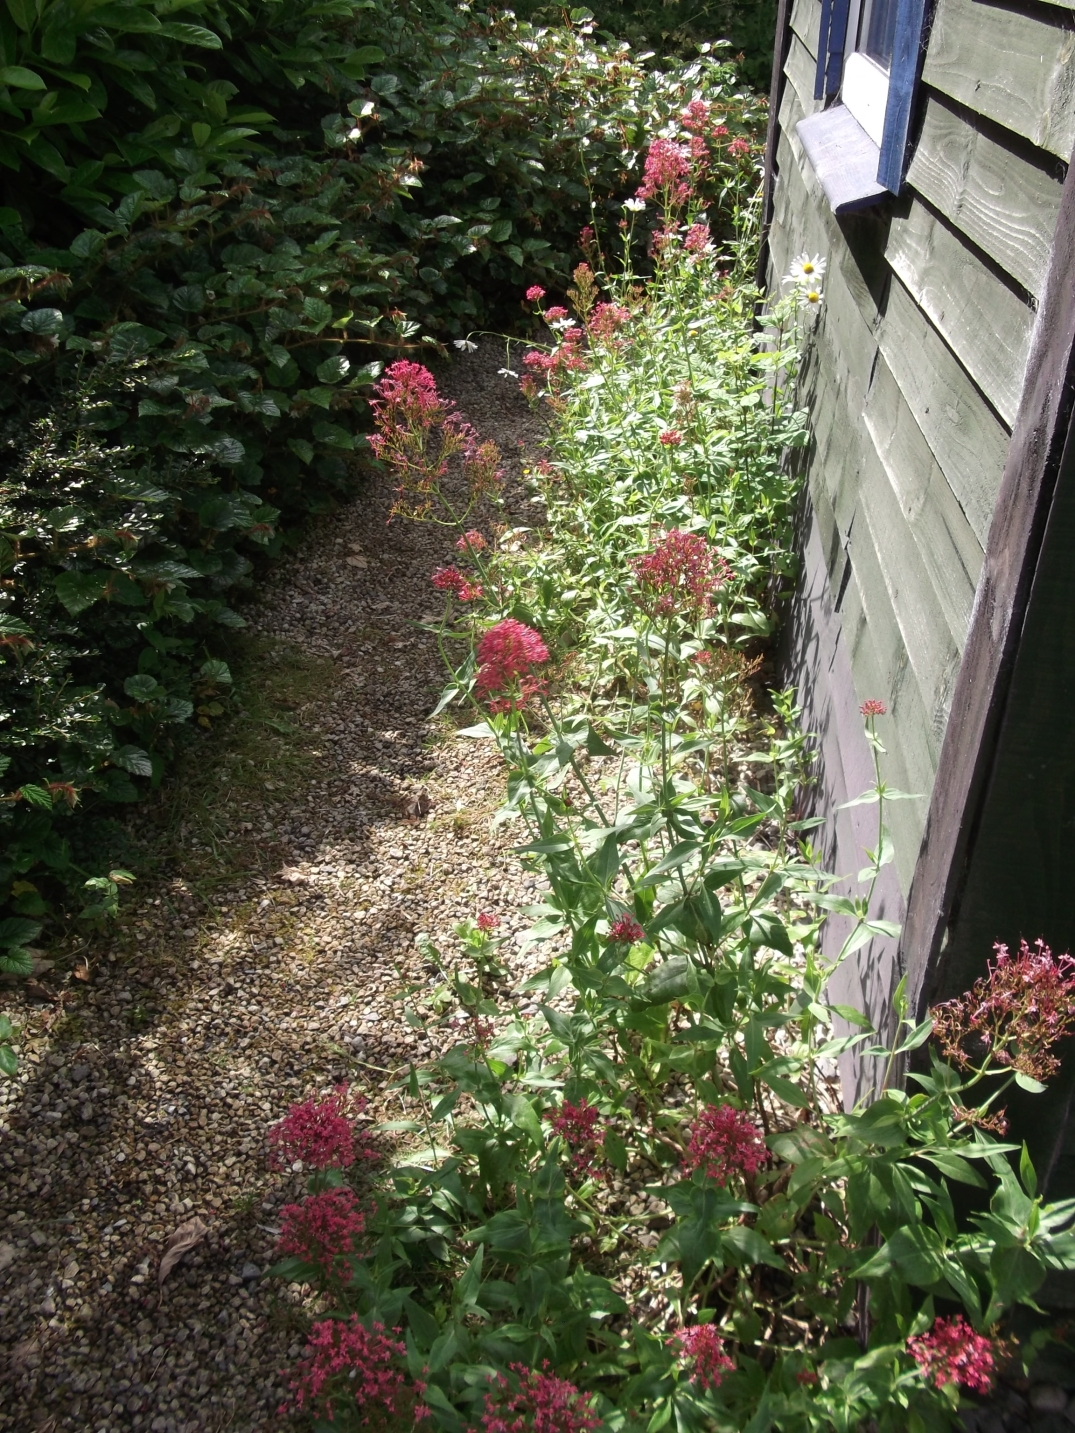 permaculture @ bealtainecottage.com (9)